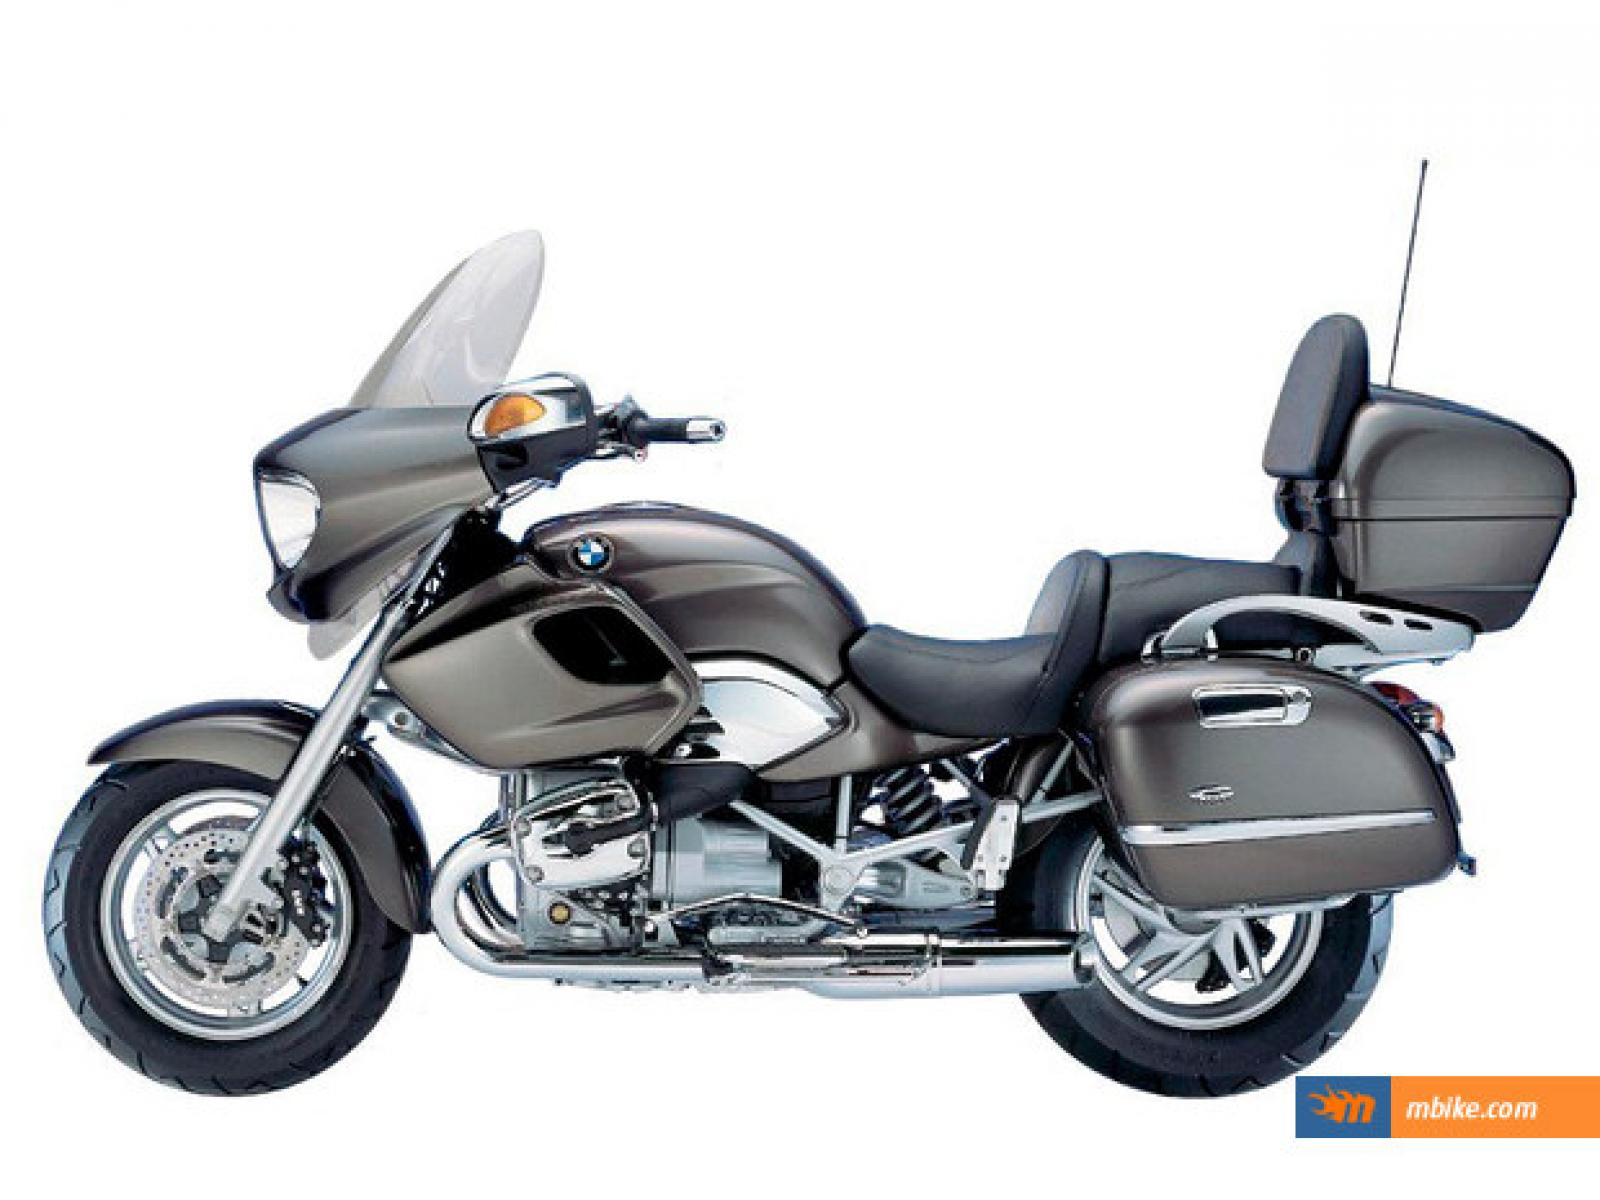 bmw-r1200cl-2003-11 Exciting Bmw R 1200 Cl forum Cars Trend